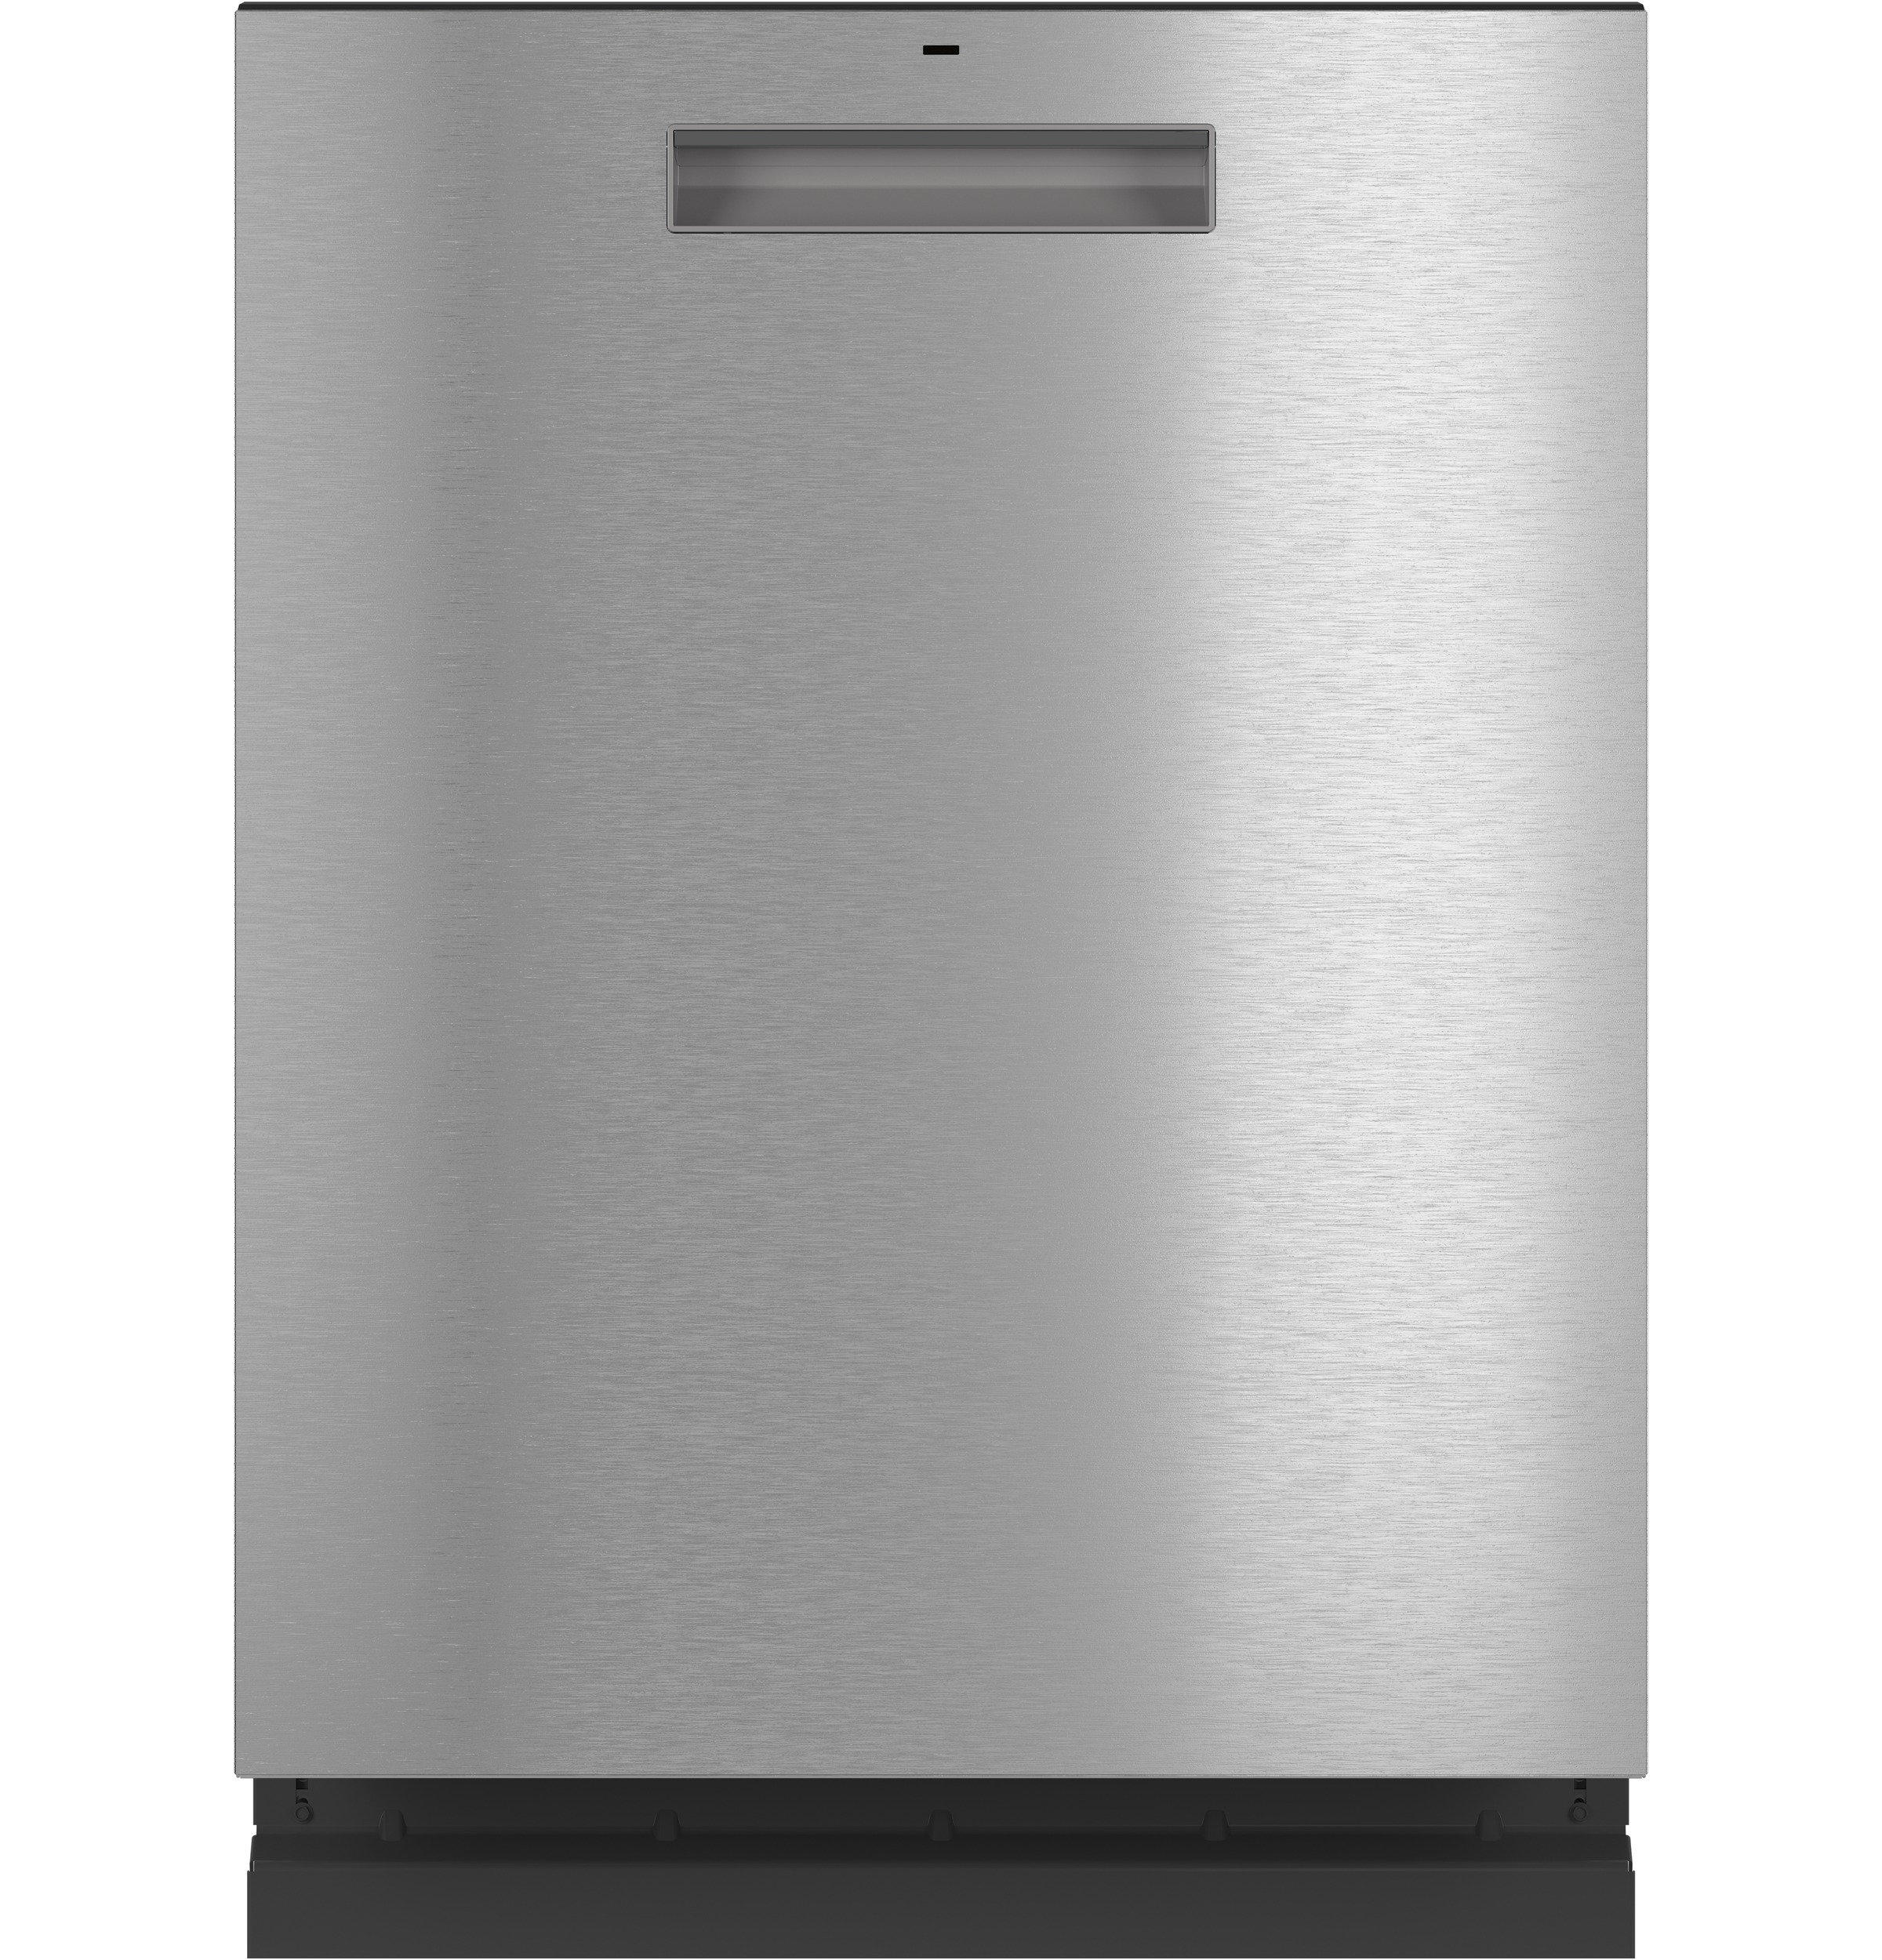 Cafe Café™ Stainless Steel Interior Dishwasher with Sanitize and Ultra Wash & Dry in Platinum Glass